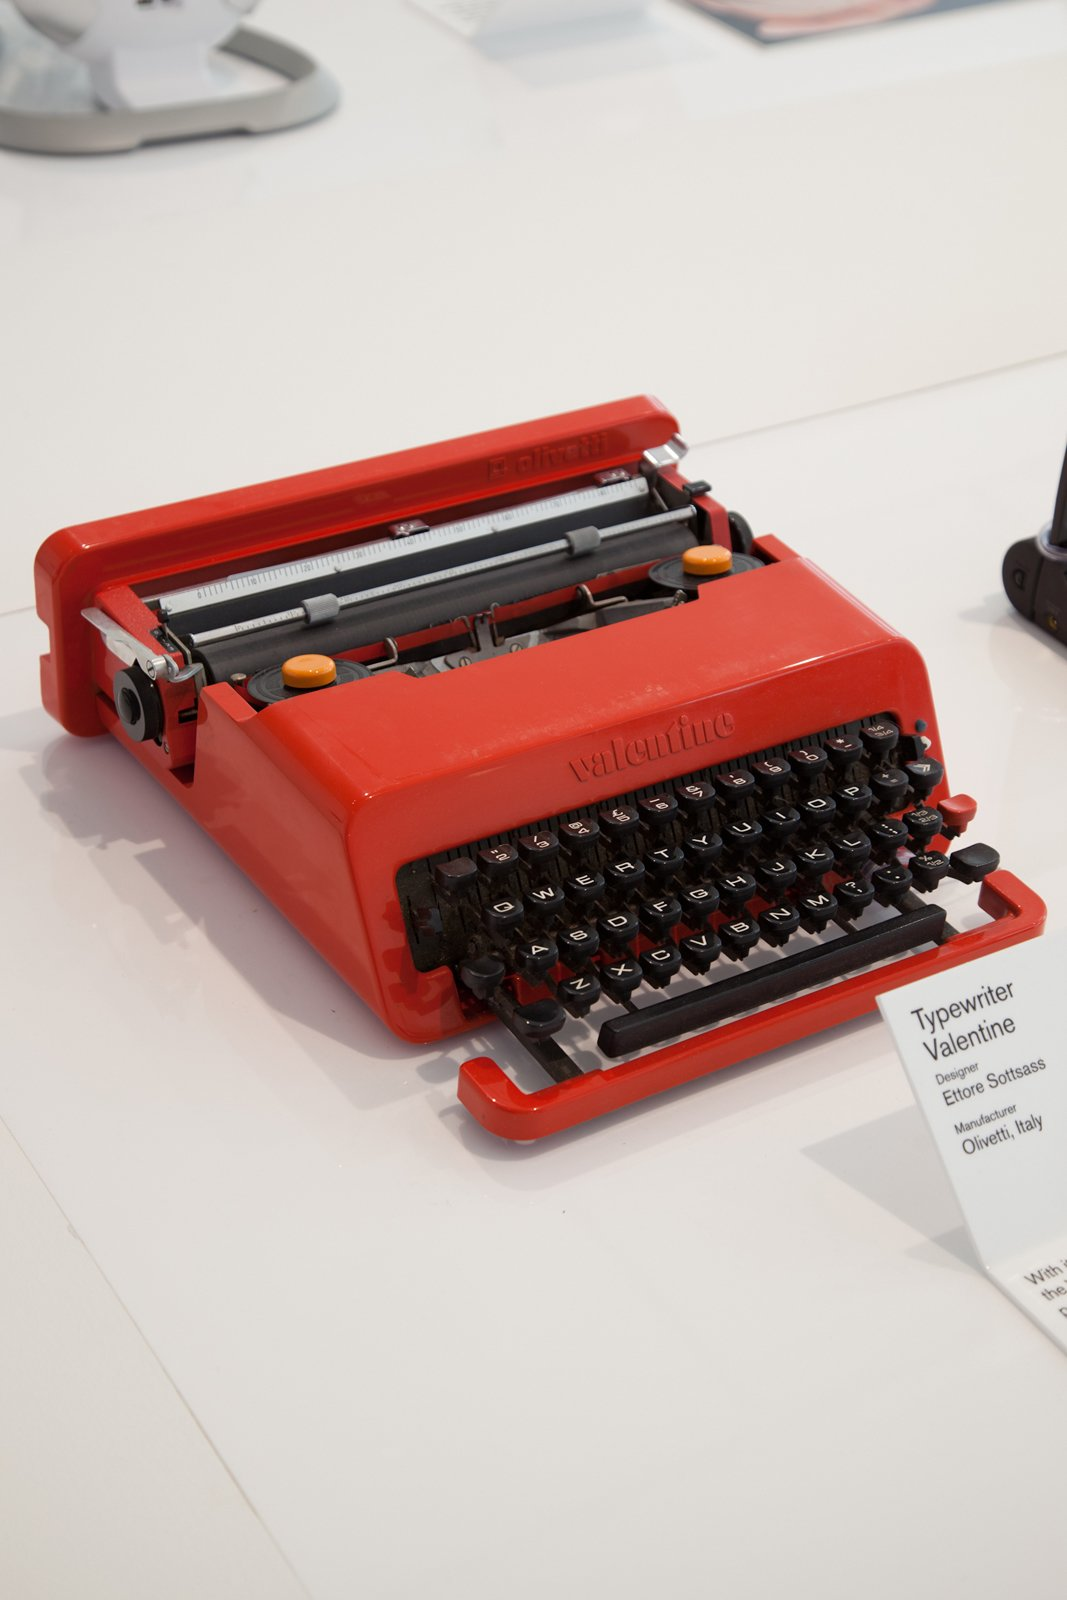 The Typewriter Valentine by Ettore Sottsass for Olivetti was dubbed the Biro of typewriters.  Design Museum London's Extraordinary Stories about Ordinary Things by Rebecca L. Weber